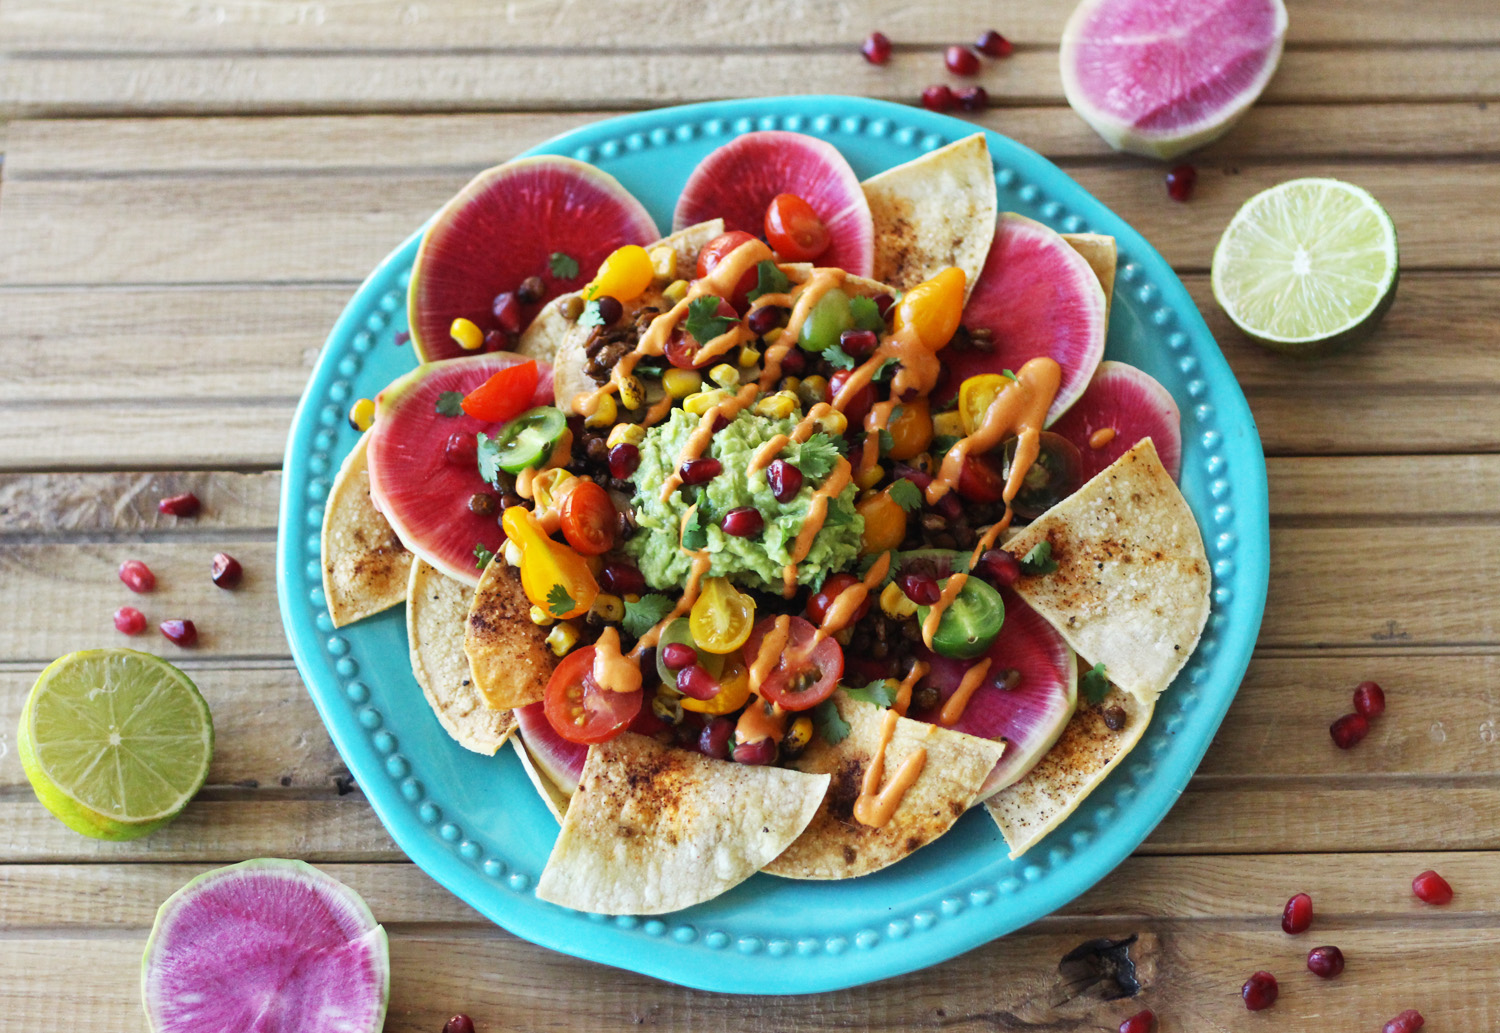 Rainbow Lentil Nachos for Two with Chipotle Queso (Vegan, GF)